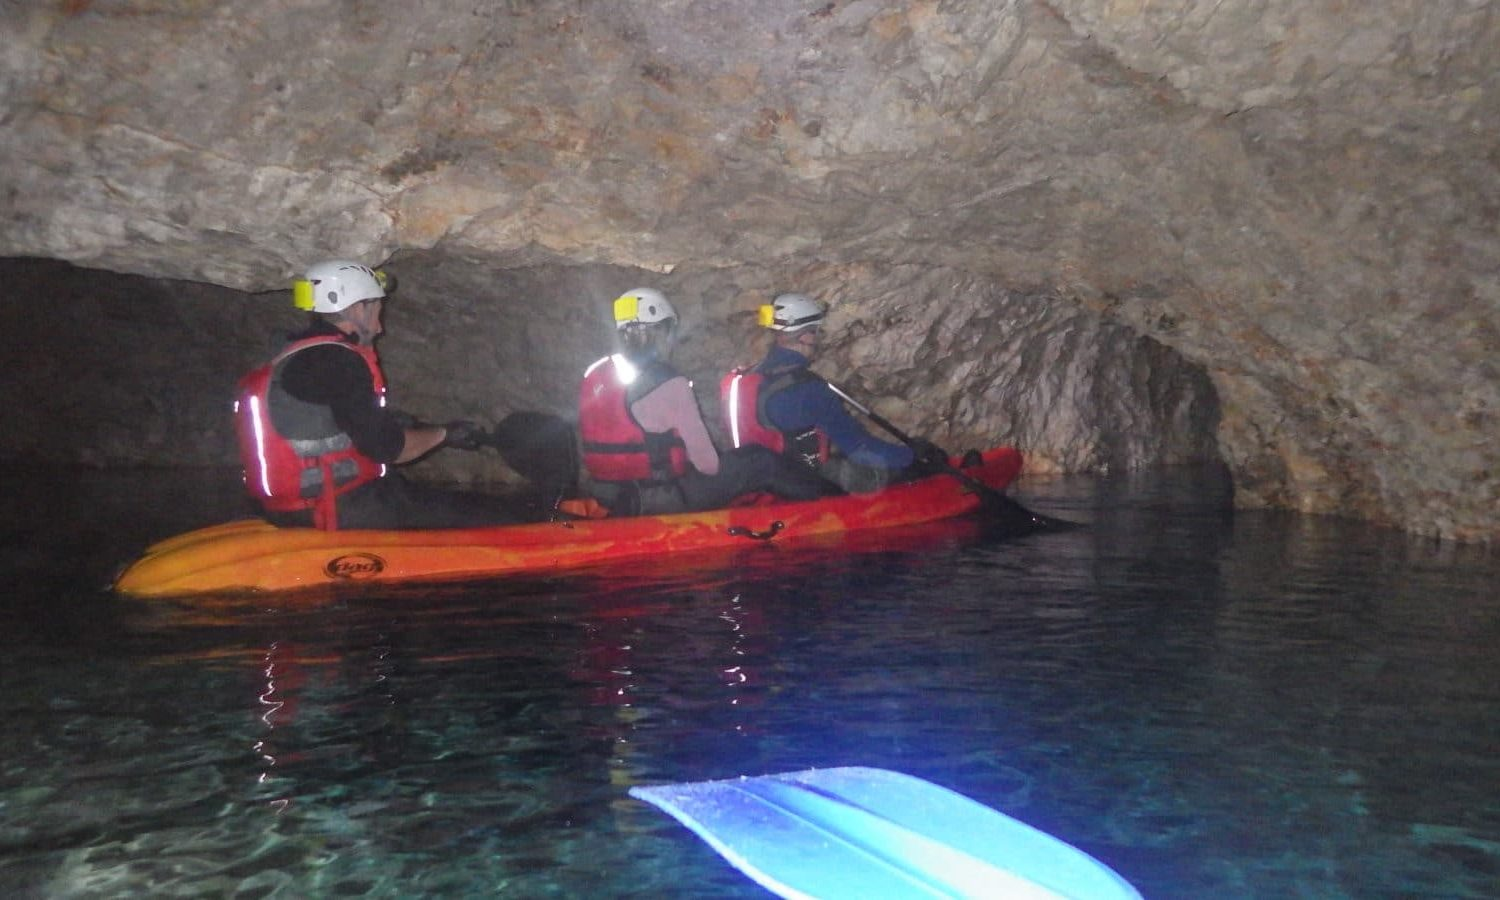 Cave kayak in Mežica